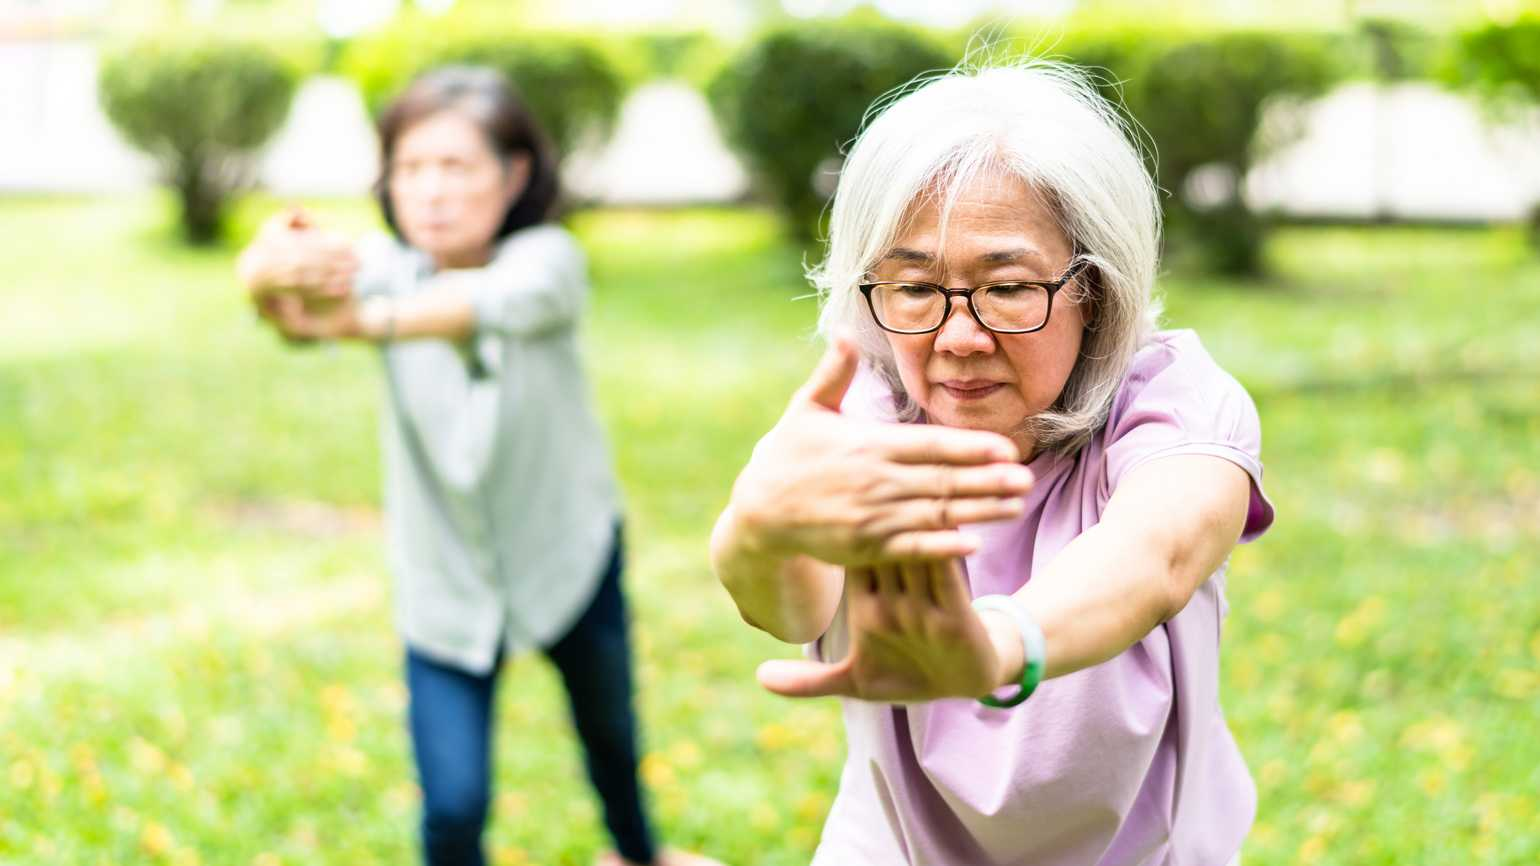 Two women practicing tai chi outdoors.